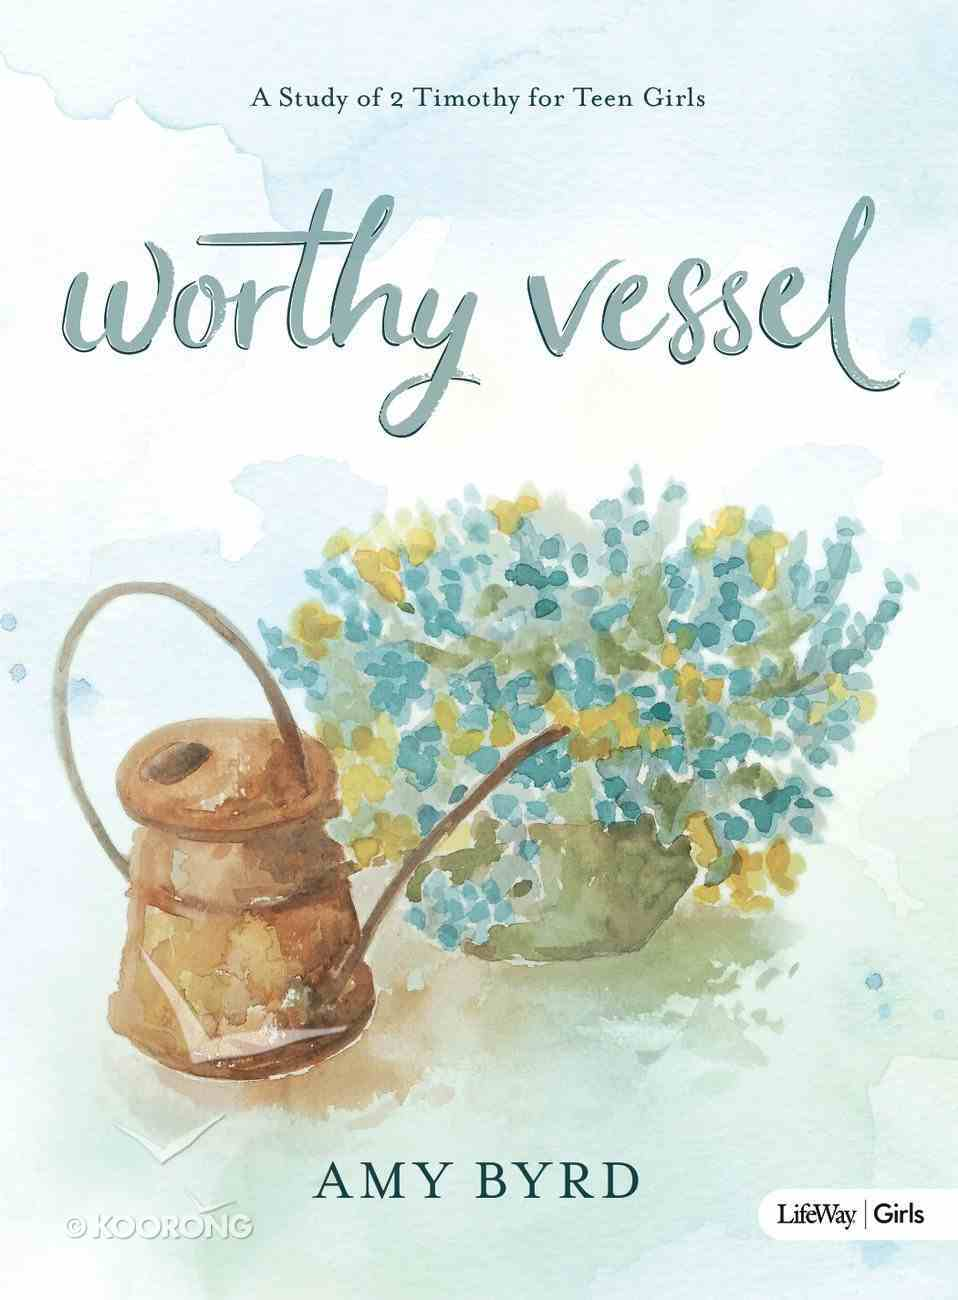 Worthy Vessel: A Study of 2 Timothy For Teen Girls Paperback